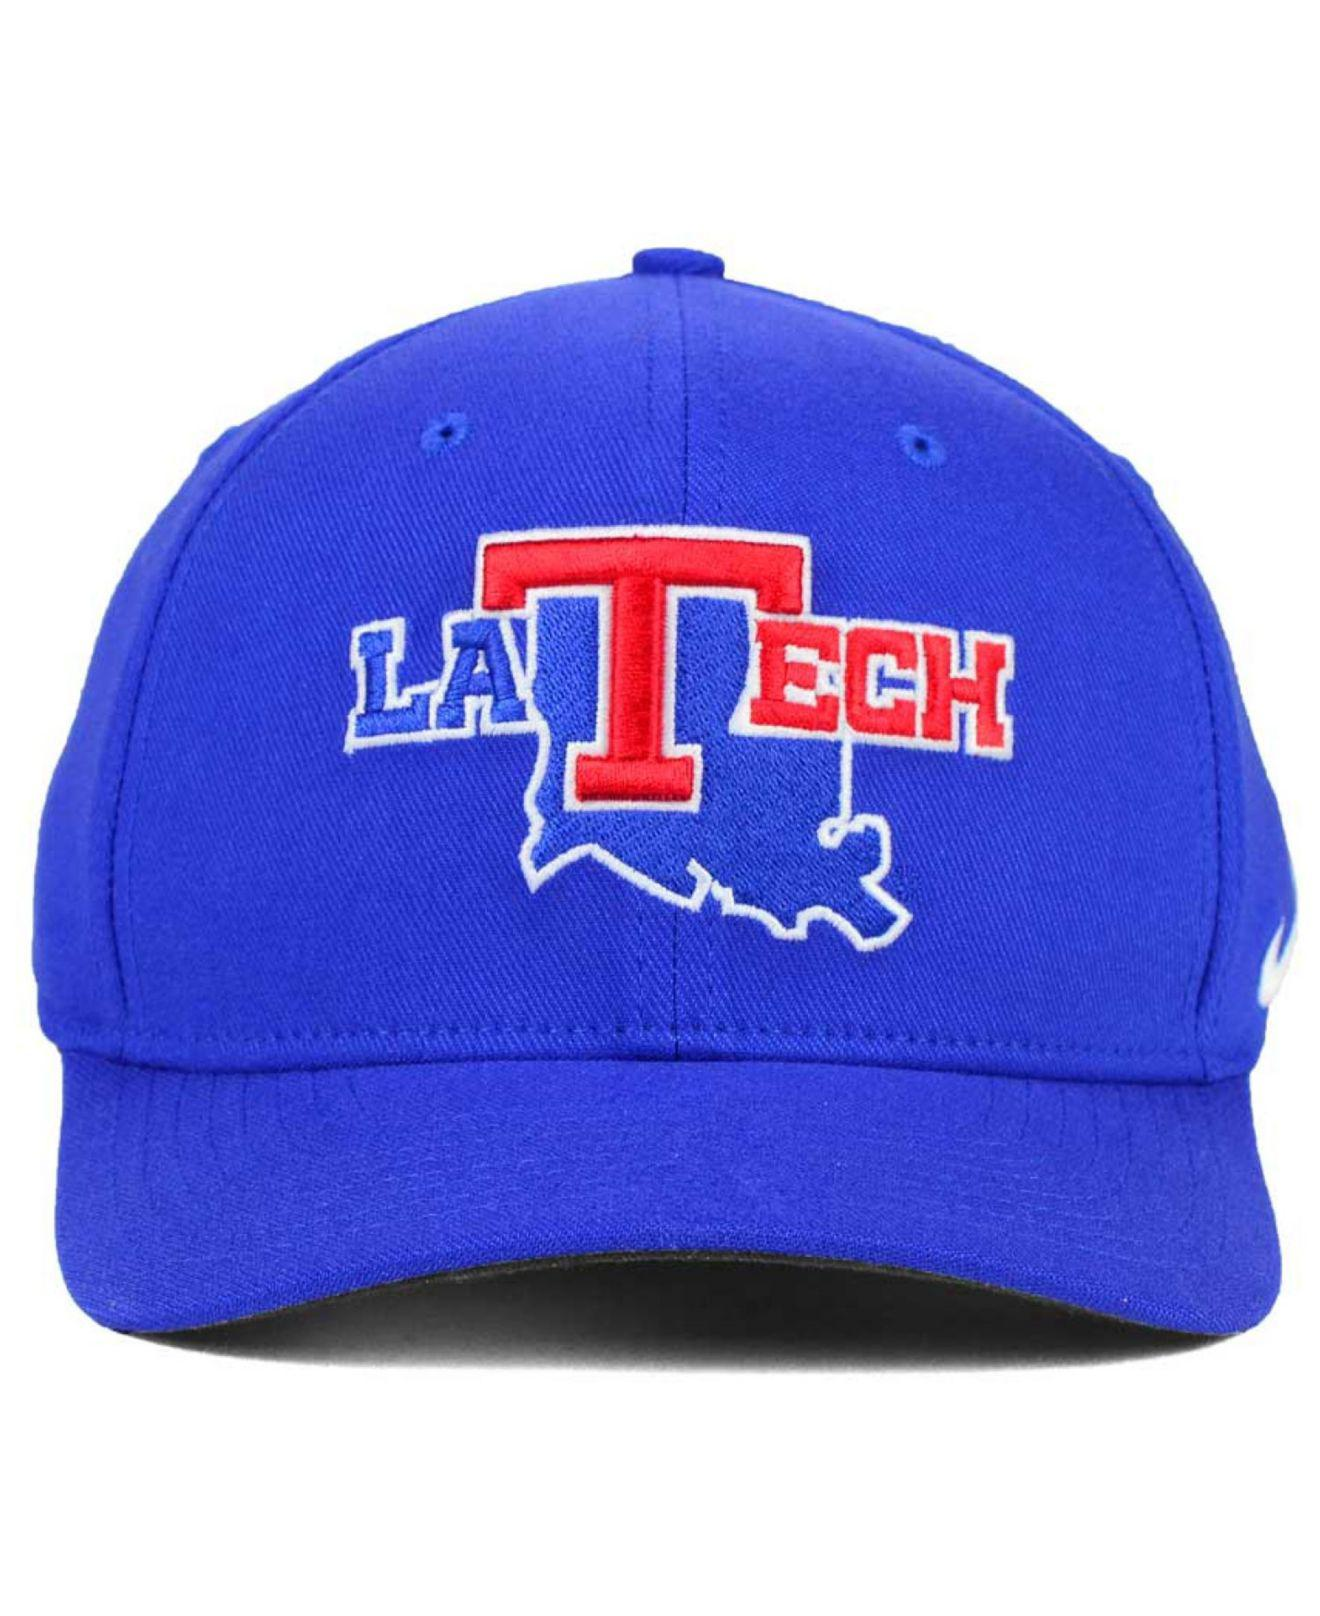 Lyst - Nike Louisiana Tech Bulldogs Classic Swoosh Cap in Blue for Men c2dd280b84e4